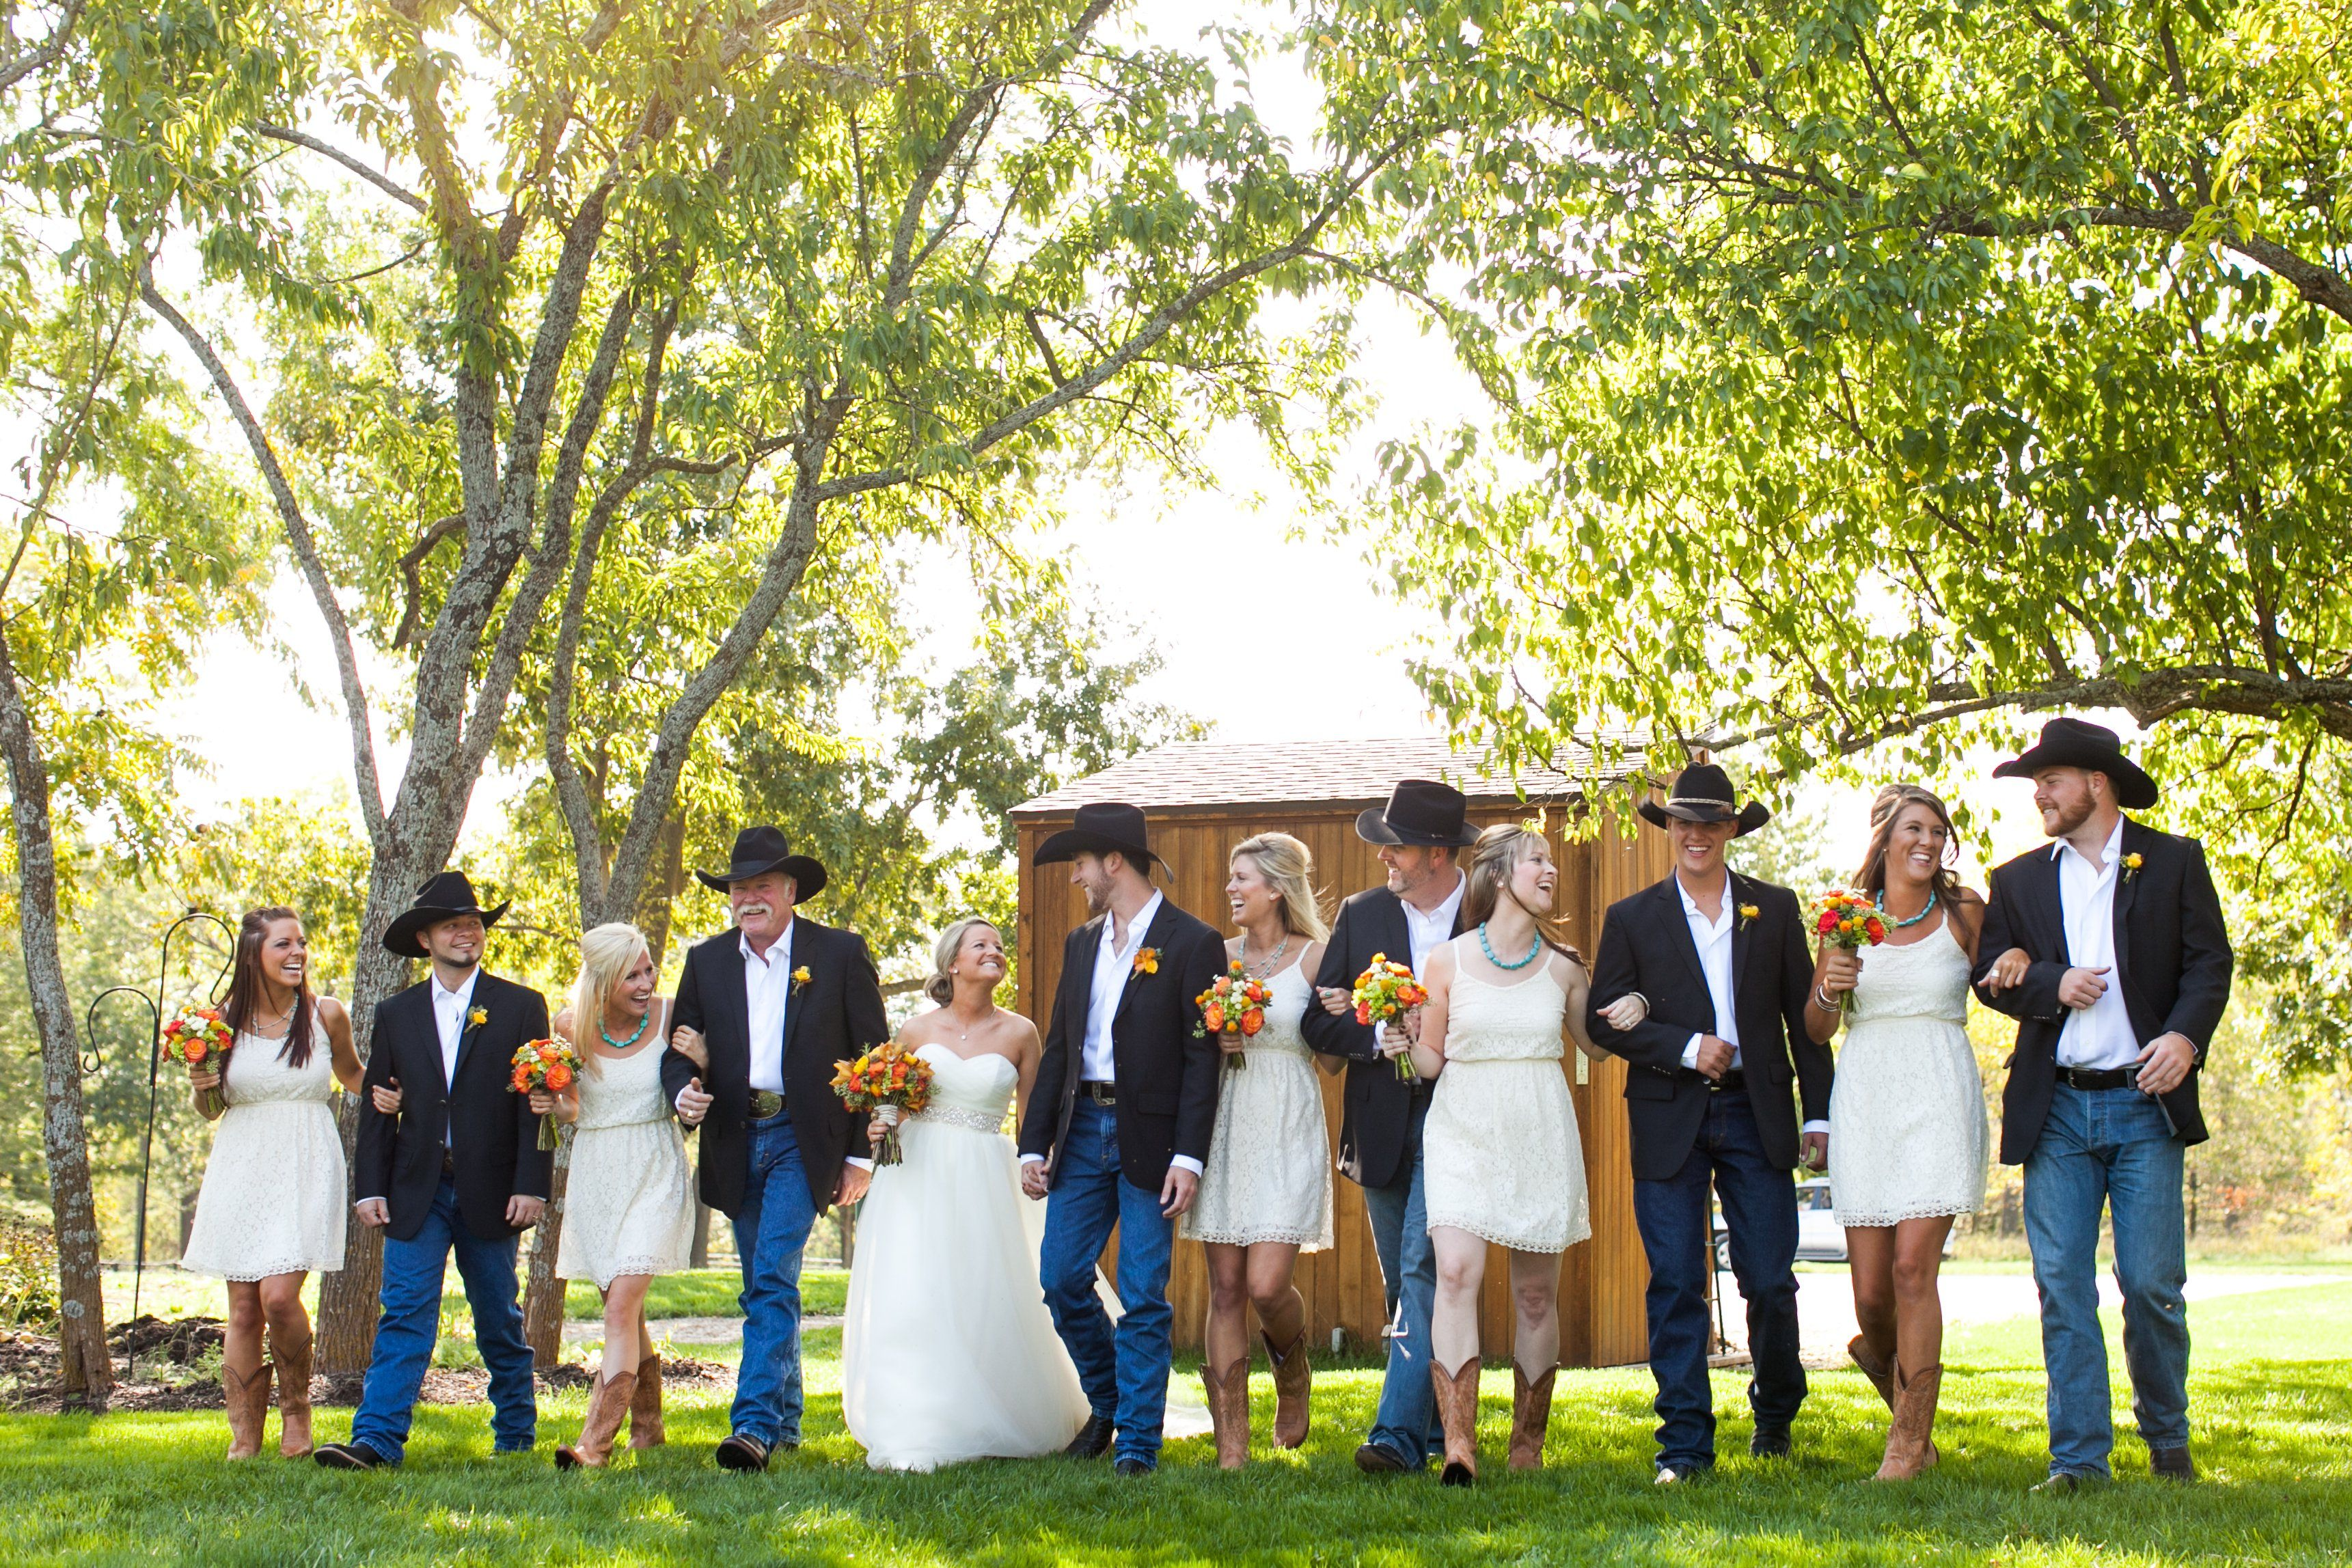 Country Wedding Attire | wedding photography | Pinterest | Country ...